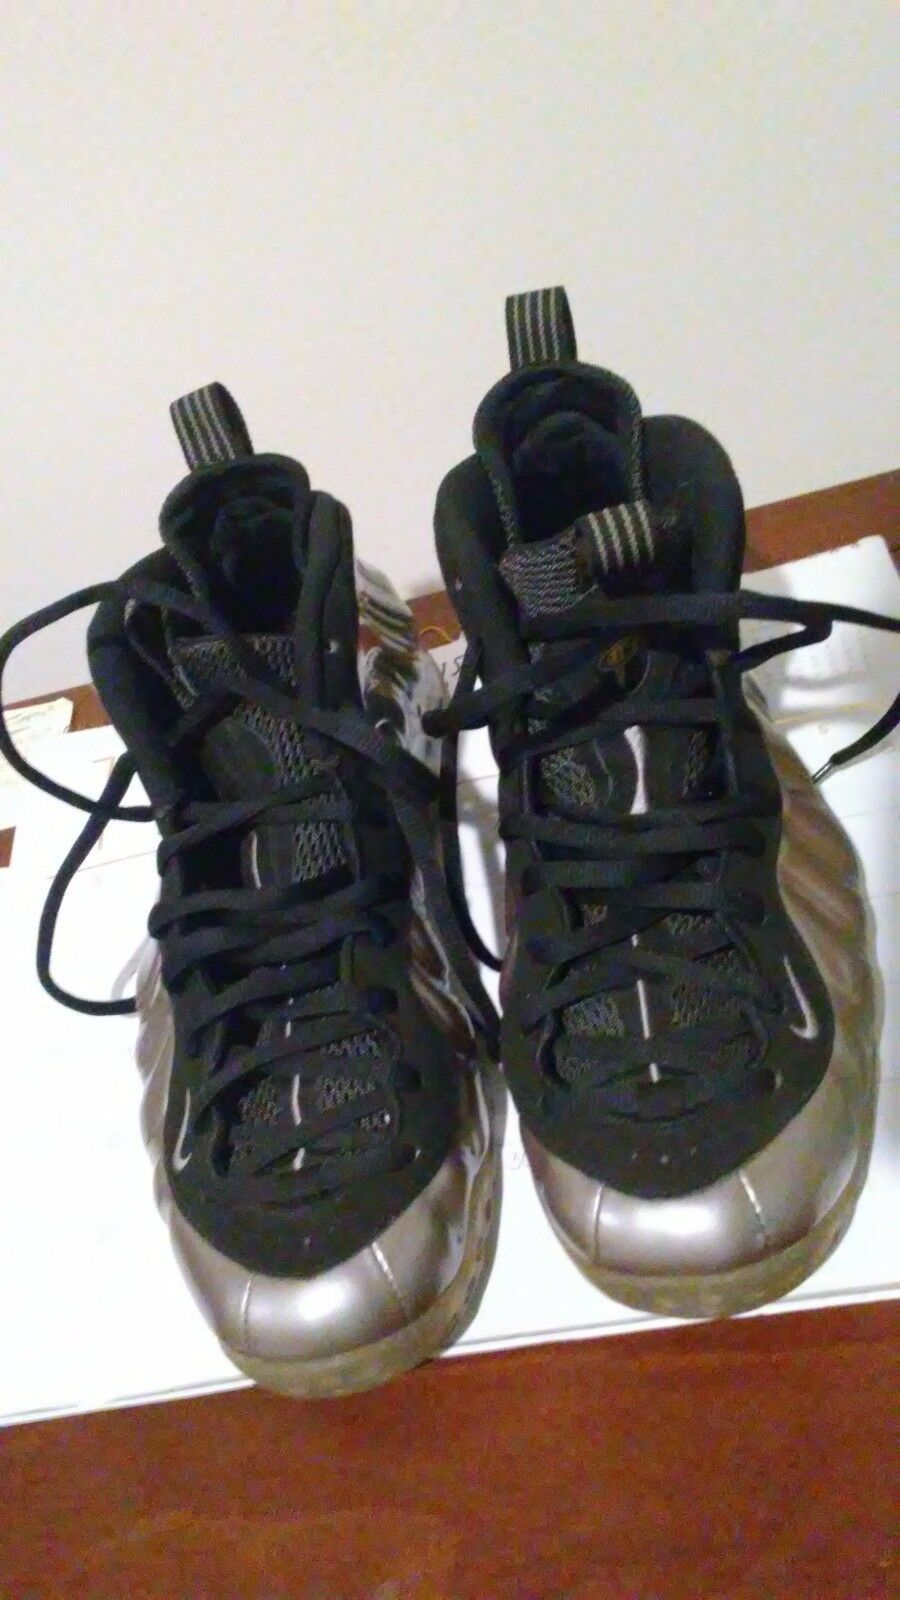 OG Authentic Nike Foamposite Pewter Size 11, clean, one day shipping